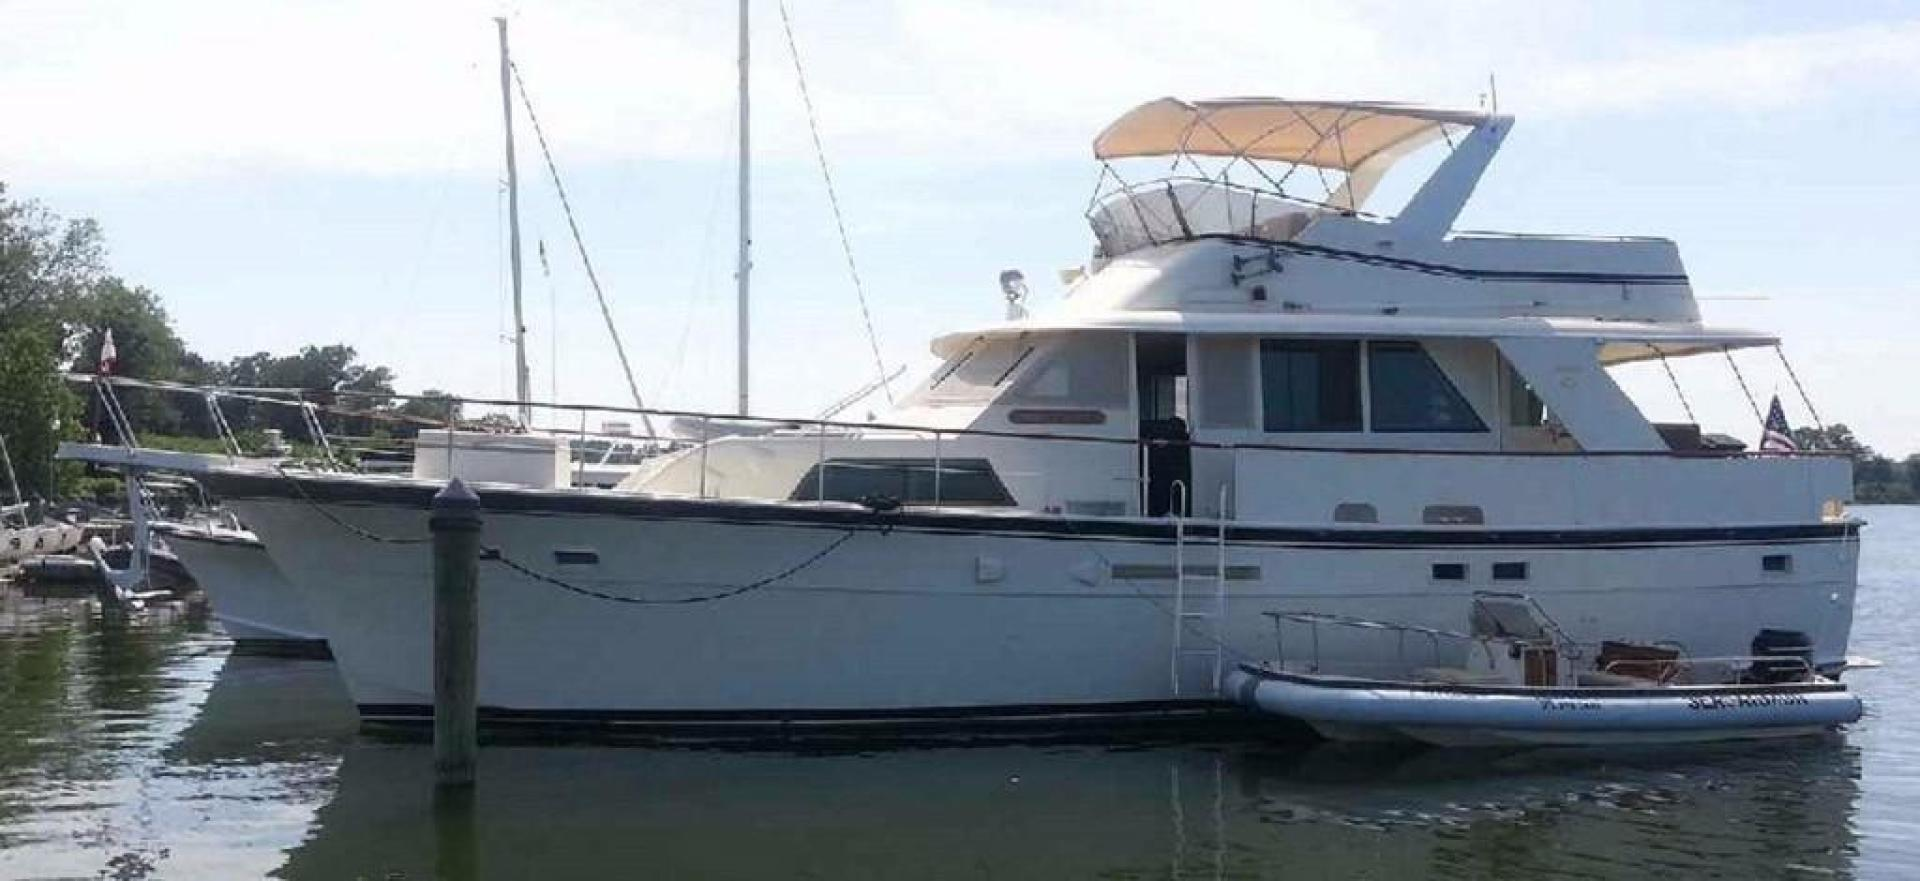 Hatteras-Motoryacht-1984-Proud-Mary-Annapolis-Maryland-United-